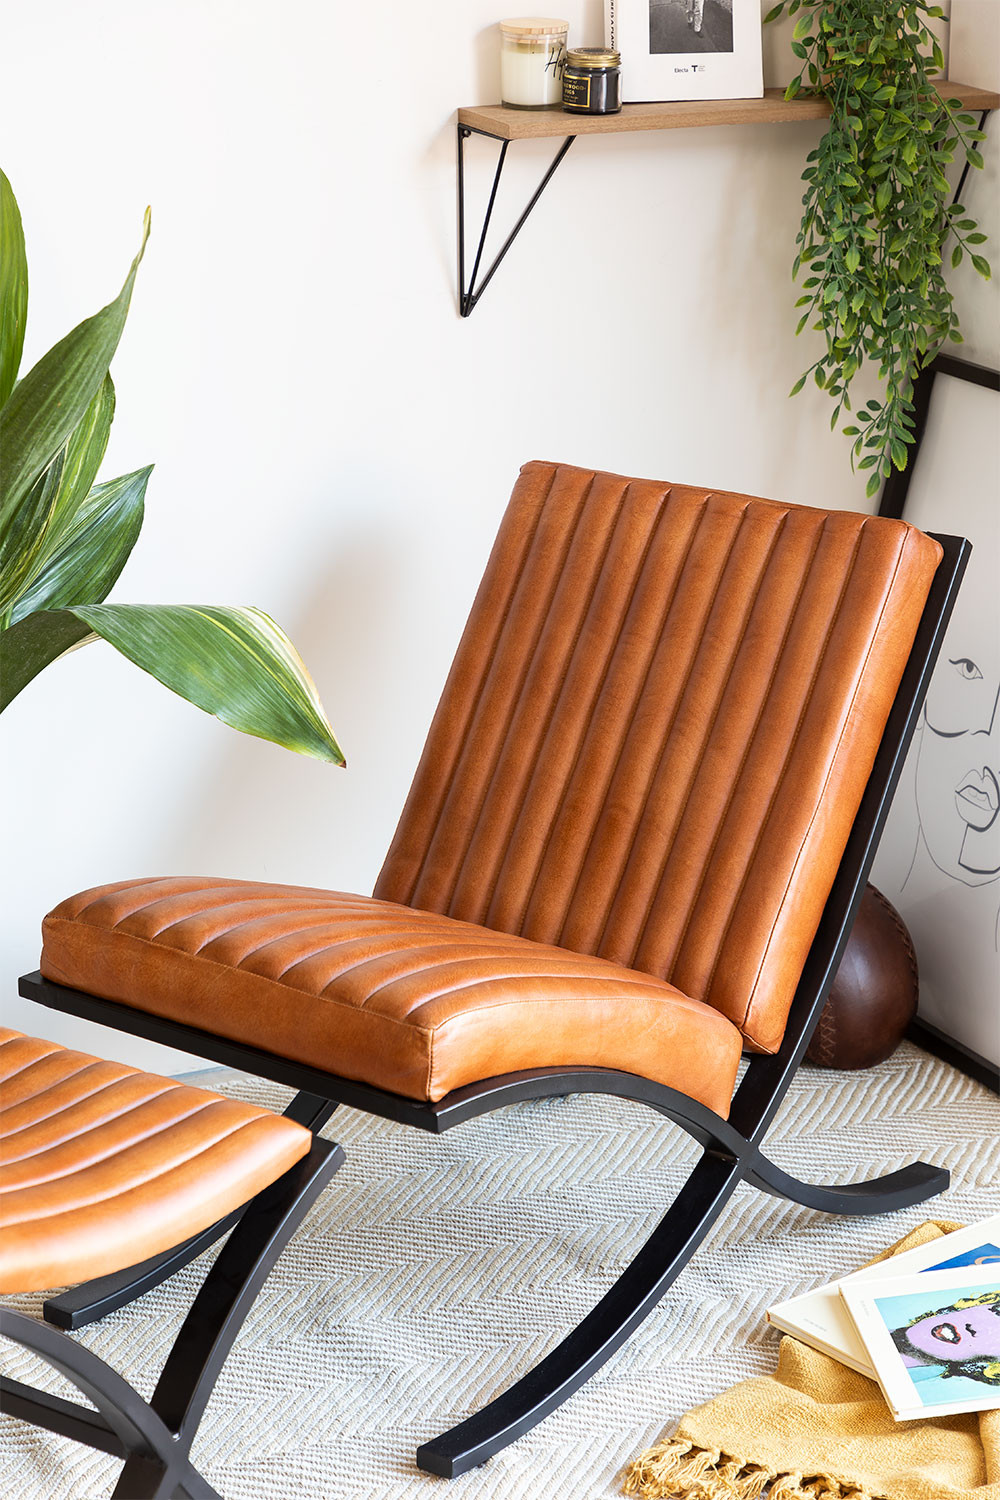 Leather Chair Revyan, gallery image 1